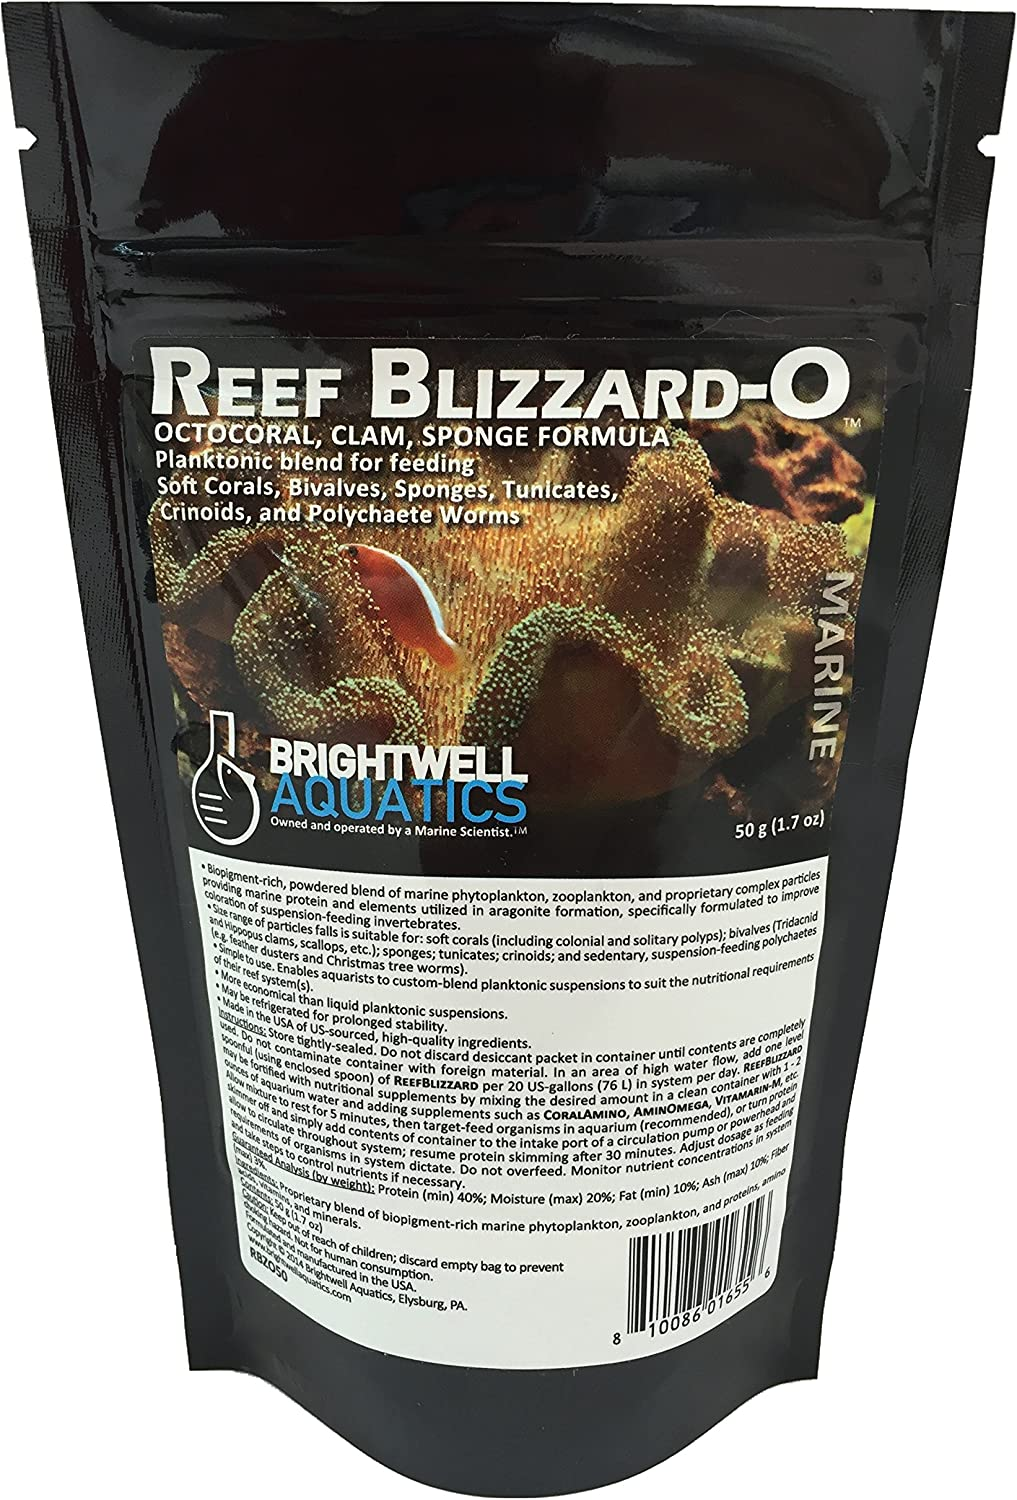 Brightwell Aquatics Reef Blizzard O - Powdered Planktonic Food Blend for Soft Corals, Bivalves, Sponges, Tunicates, Crinoids & Polychaete Worms